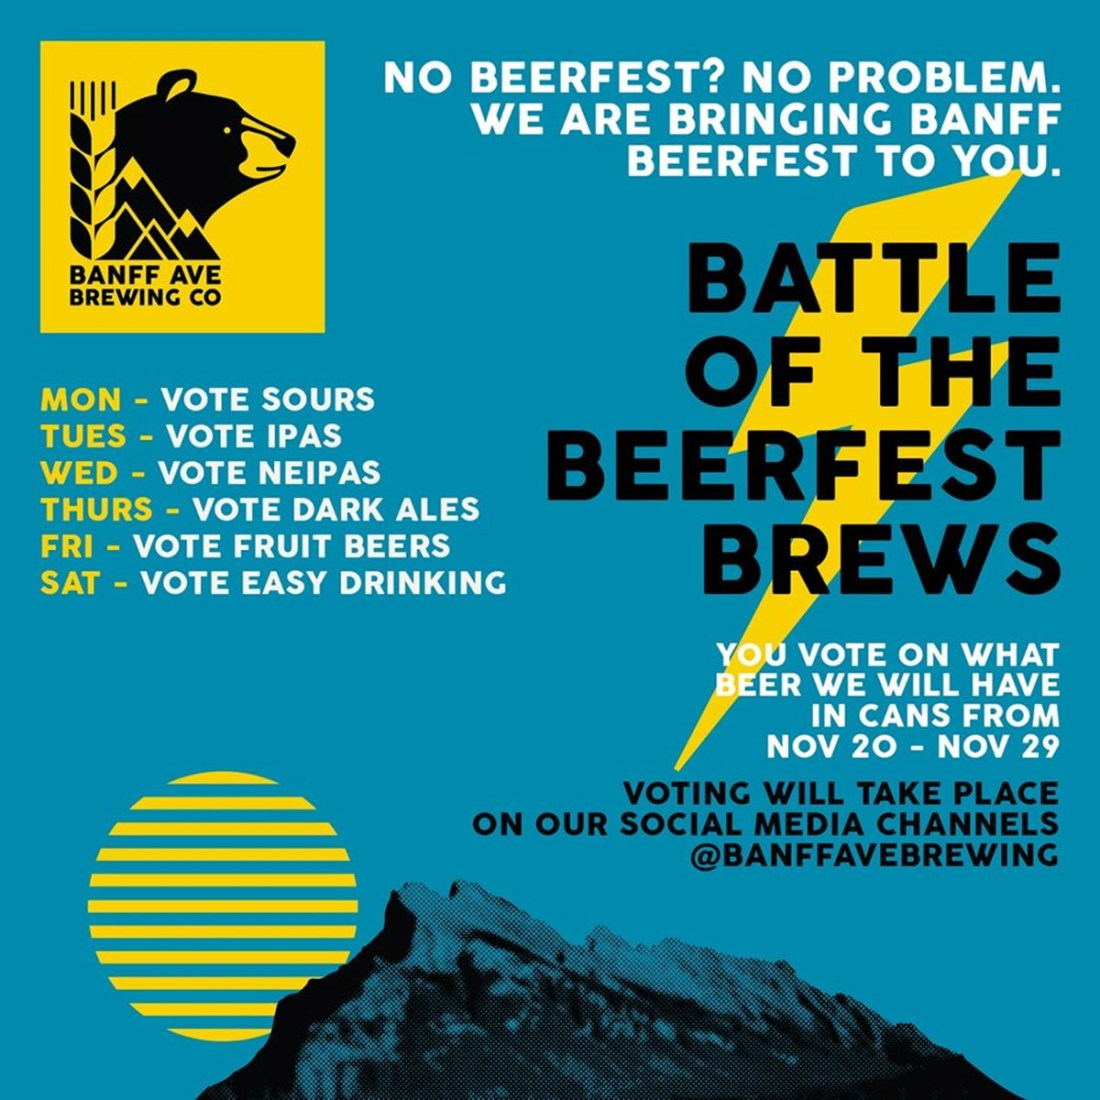 Banff Craft Beer Week Banff Ave Brewing Company battle of the beerfest brews